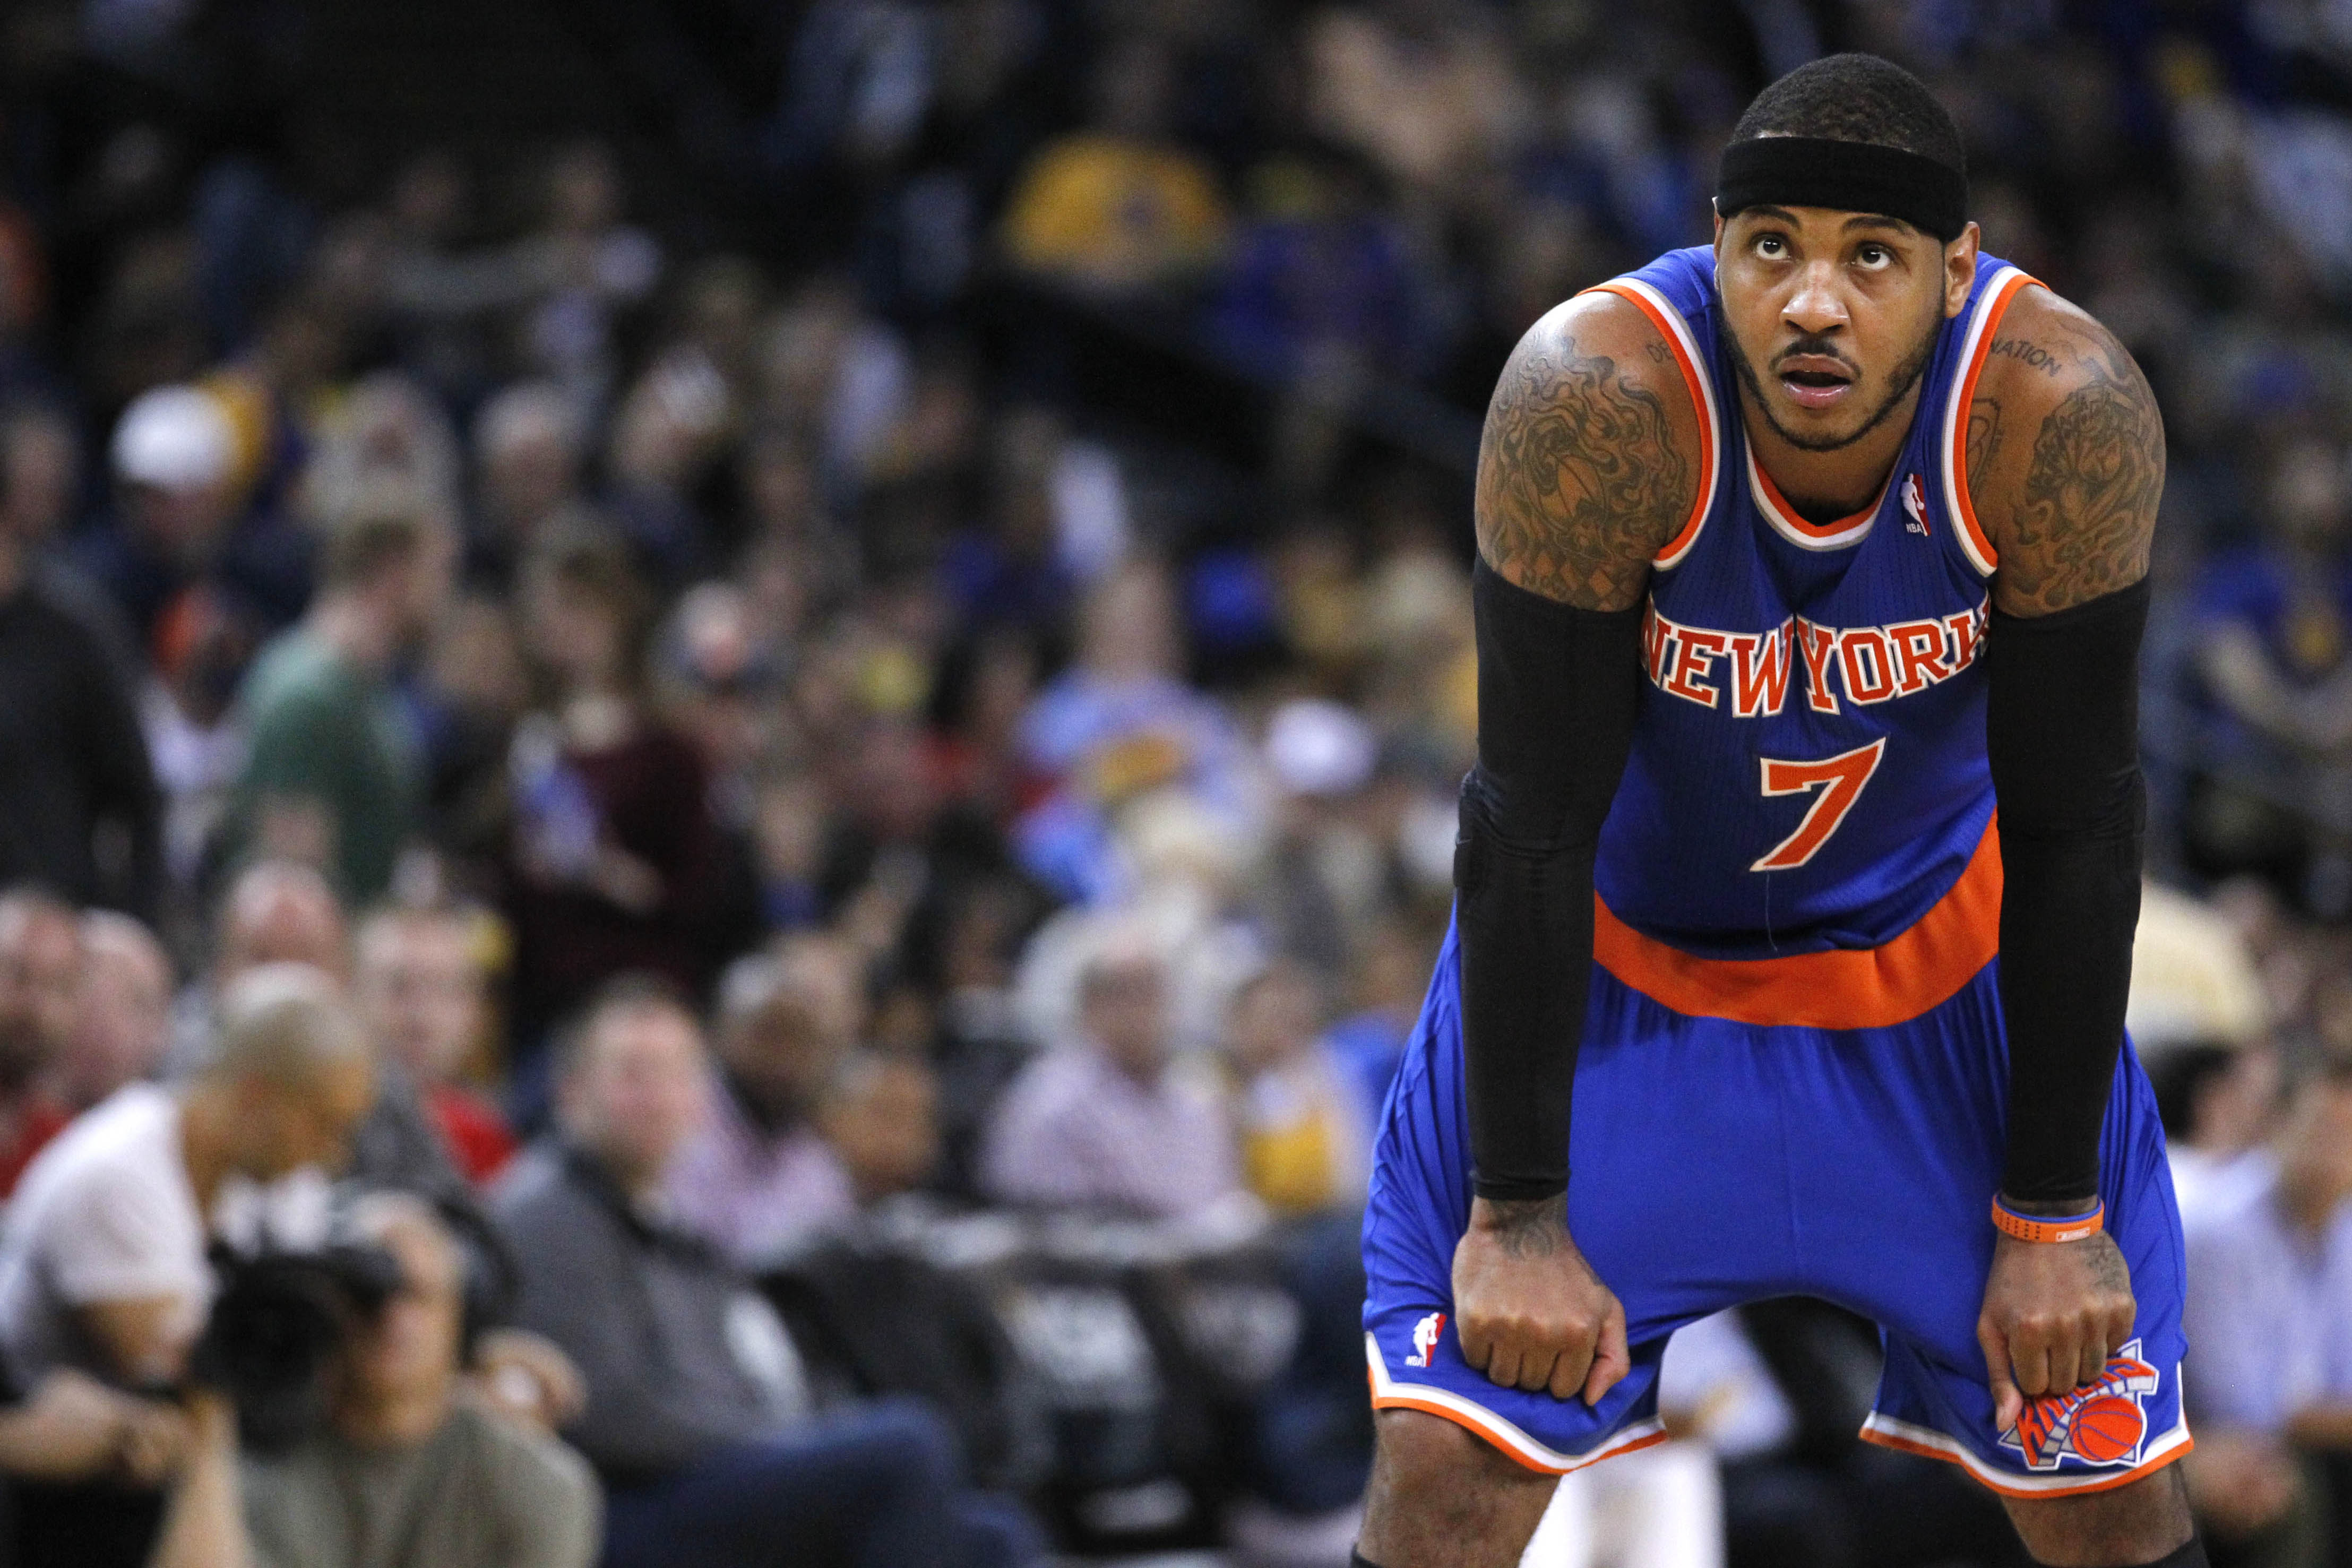 The 10-man rotation, starring the Knicks and Carmelo Anthony ge…